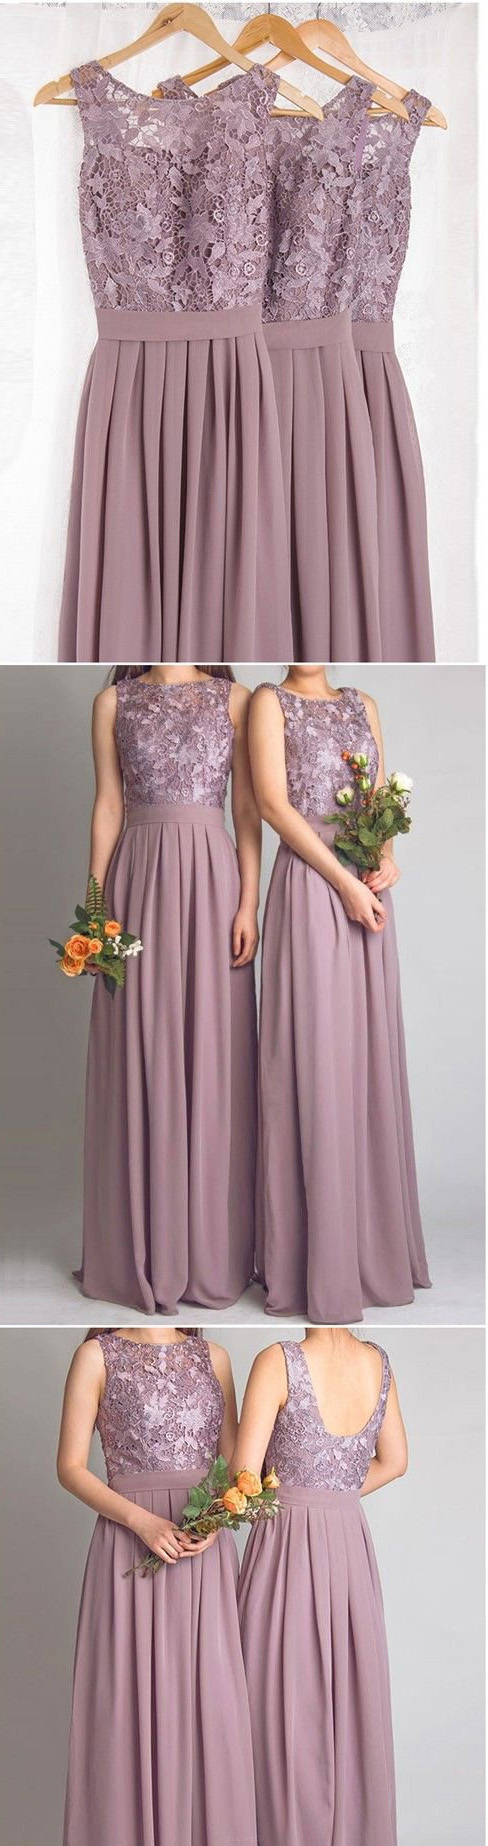 Cheap sleeveless lilac bridesmaid dresses comfortable long aline